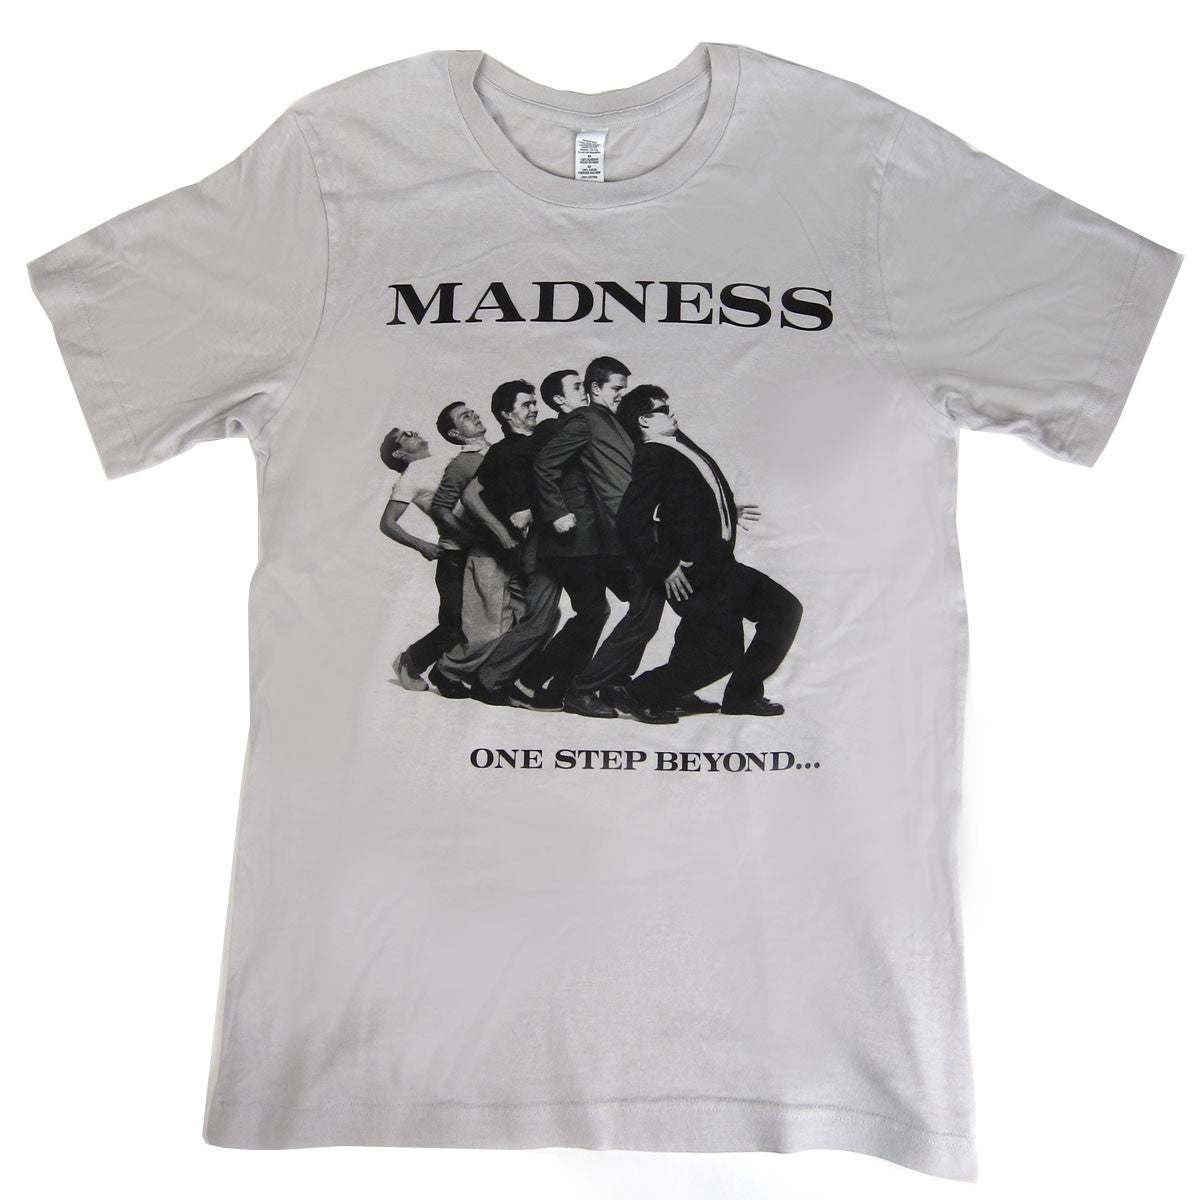 Madness: One Step Beyond Shirt - White